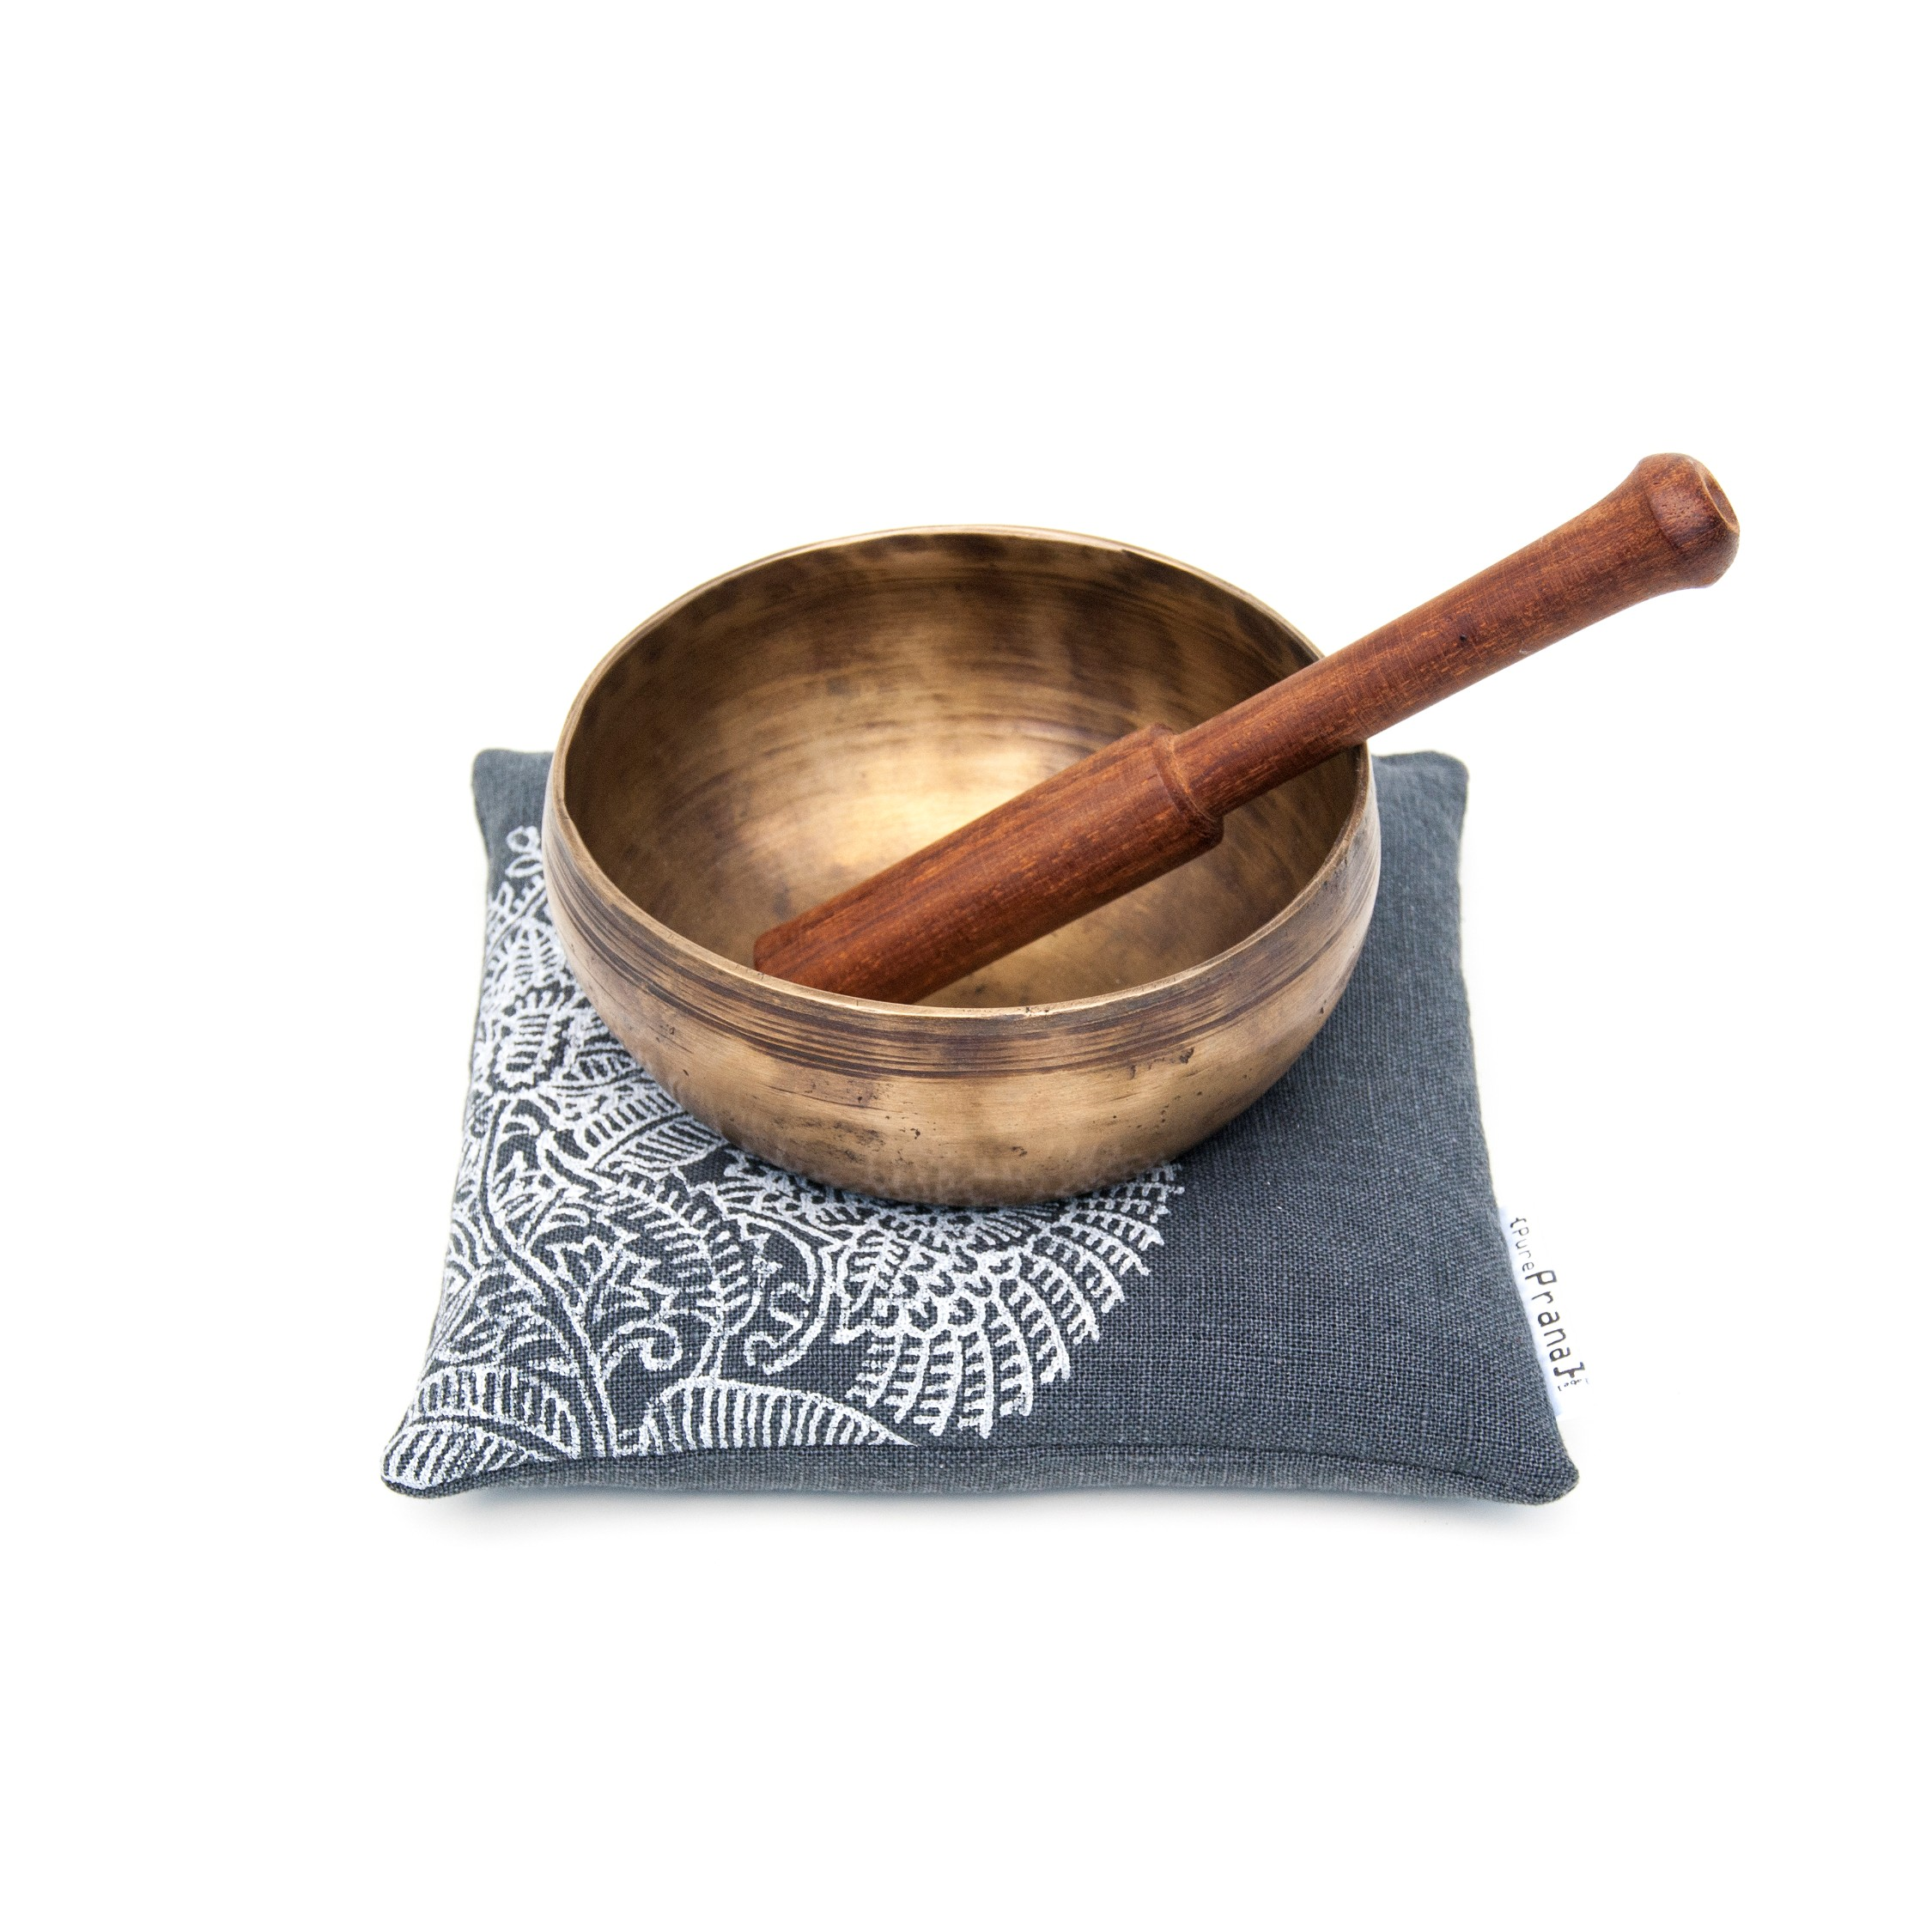 Singing bowl cushion, 100% flax linen by Pure Prana Label